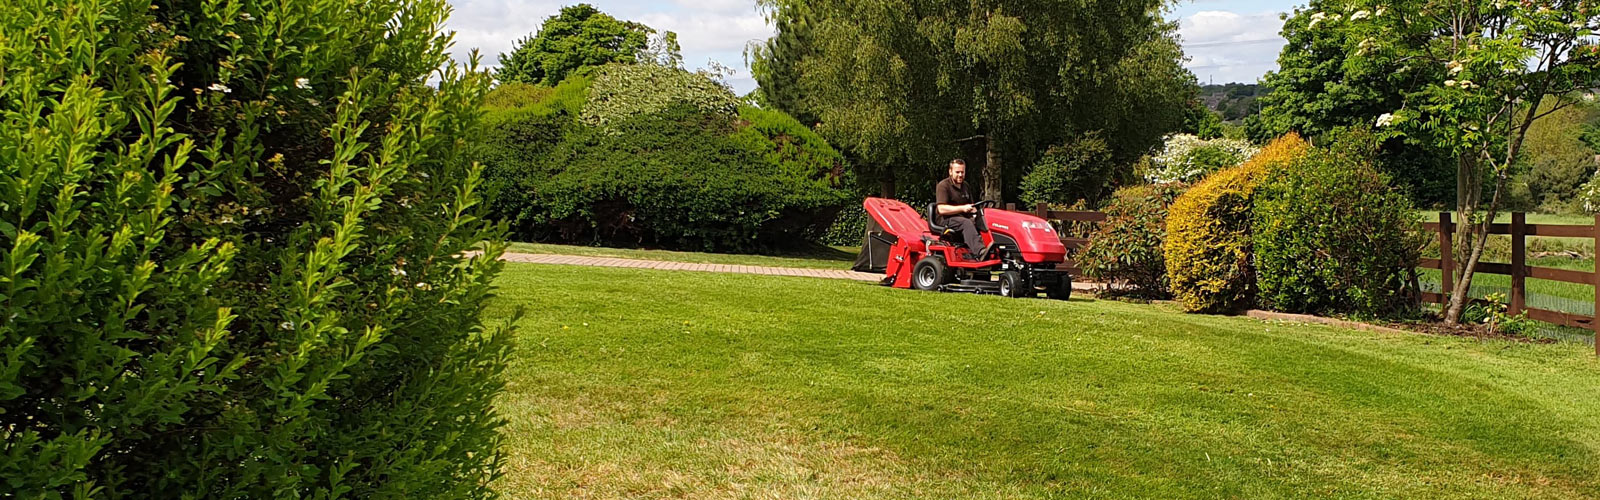 Countax C Series lawn garden tractor mower cutting and collecting grass with Powered Grass Collector